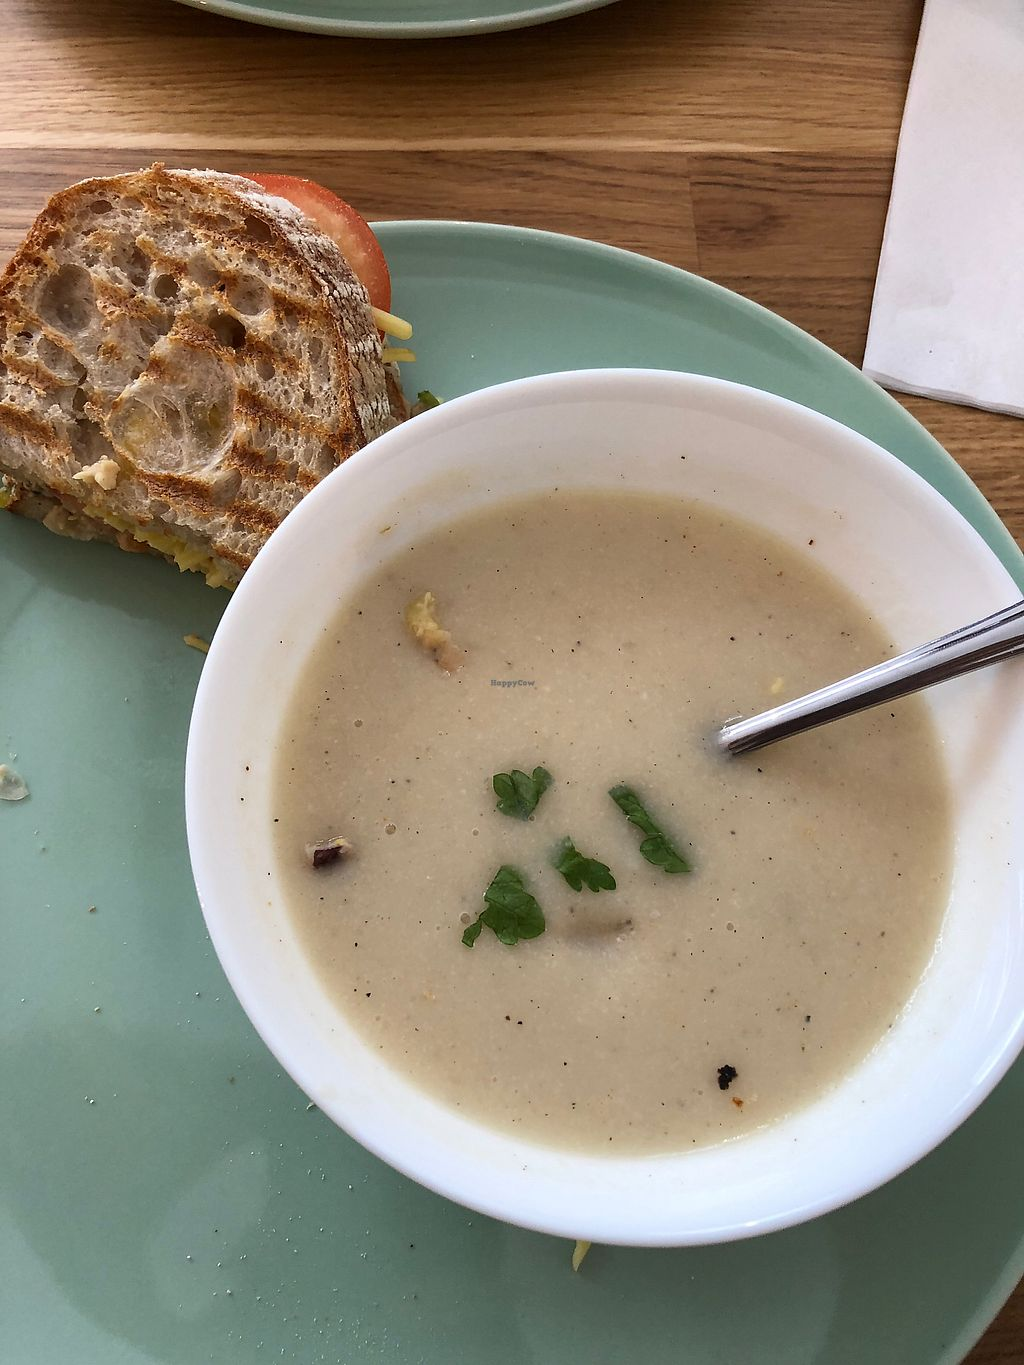 """Photo of Serenity Now  by <a href=""""/members/profile/MarkKelvin"""">MarkKelvin</a> <br/>Soup and sandwich (I've eaten half) <br/> January 22, 2018  - <a href='/contact/abuse/image/102295/349671'>Report</a>"""